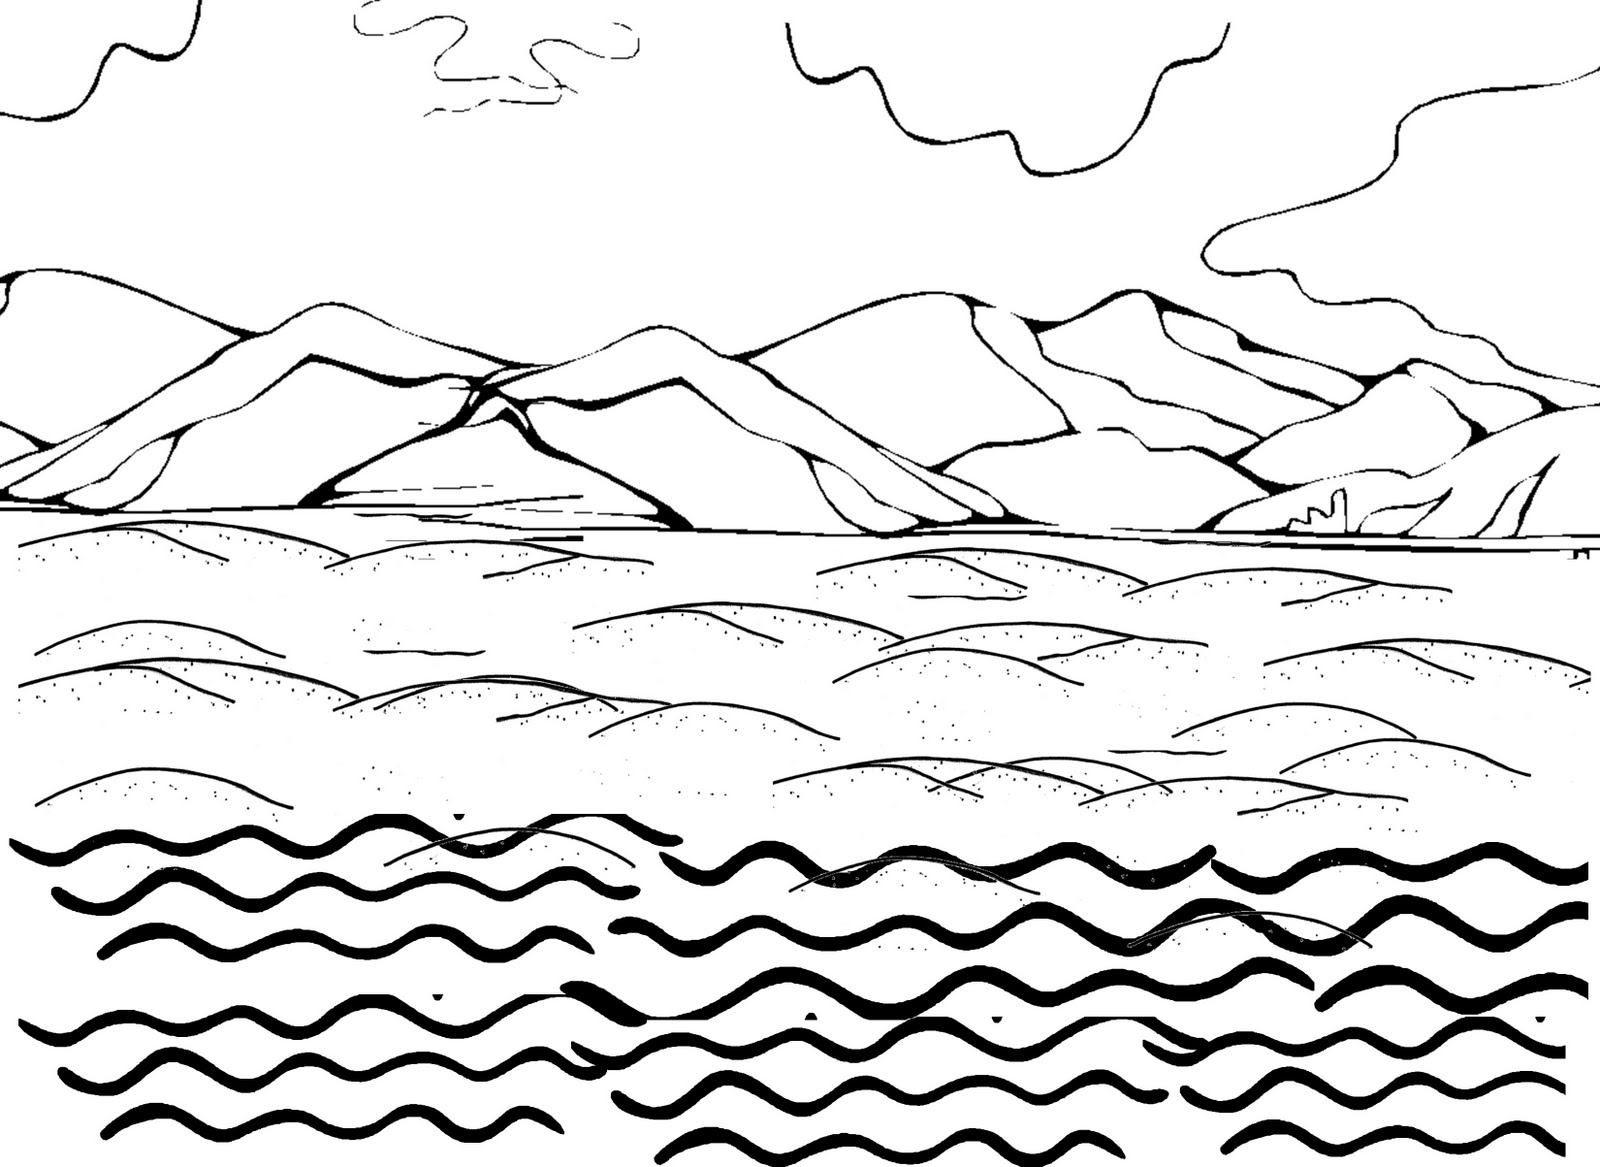 Water Waves Drawing At Getdrawings